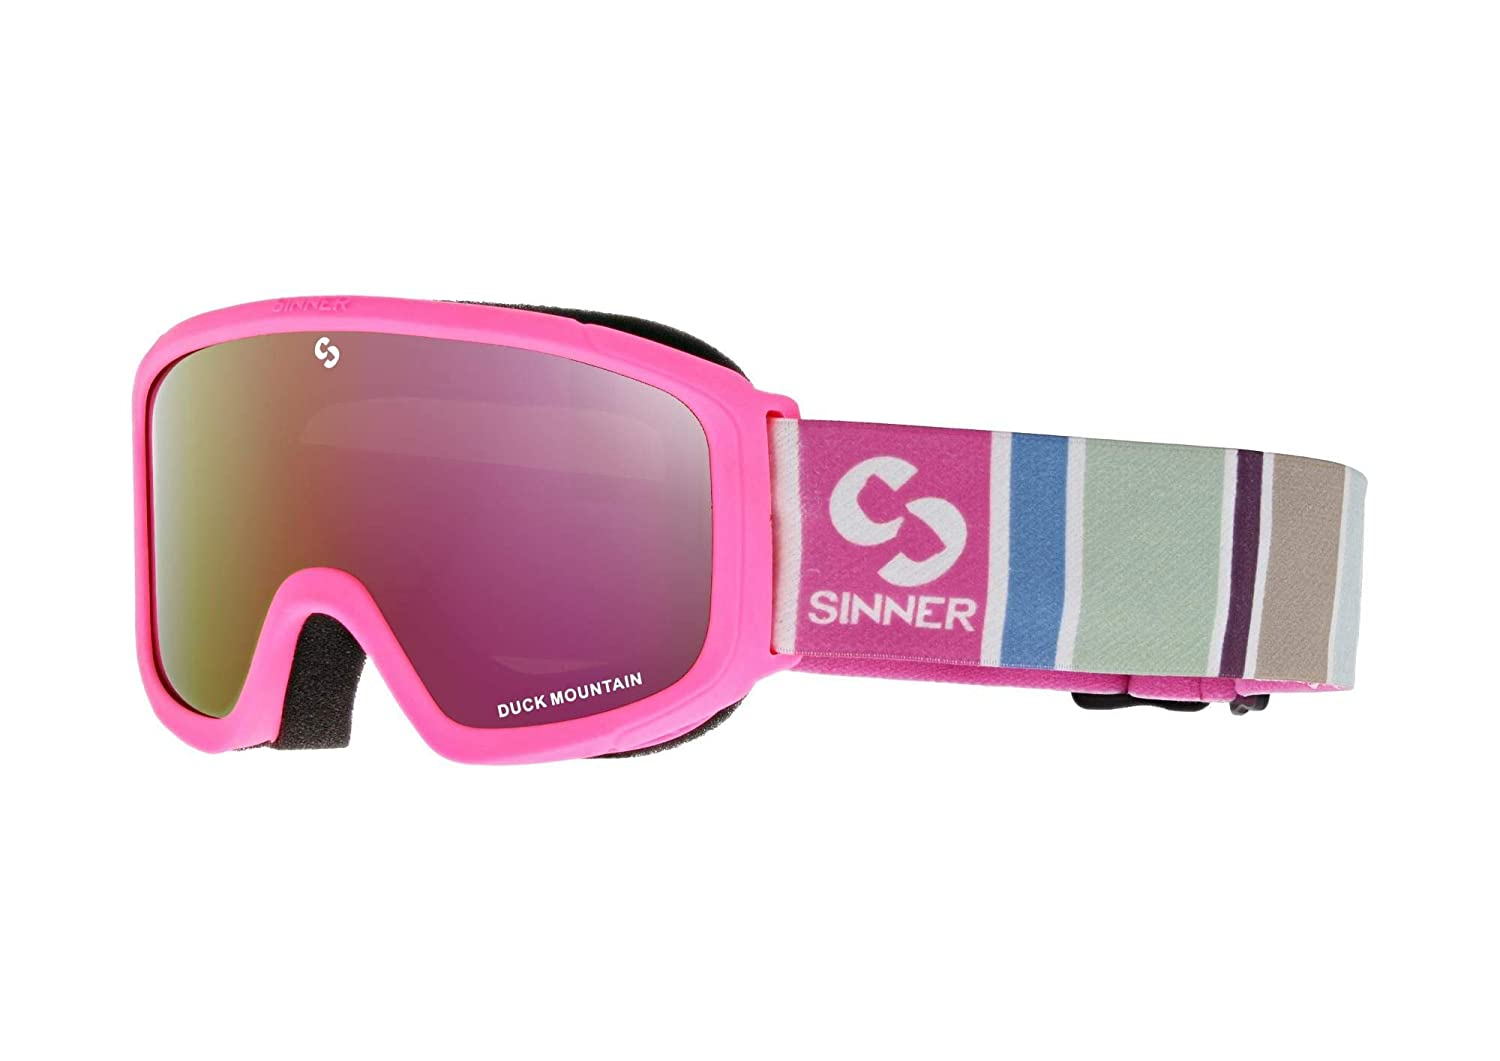 5e03a4764b2 Sinner Duck Mountain Childrens Ski Goggles in Pink Full Red Mirror   Amazon.co.uk  Sports   Outdoors